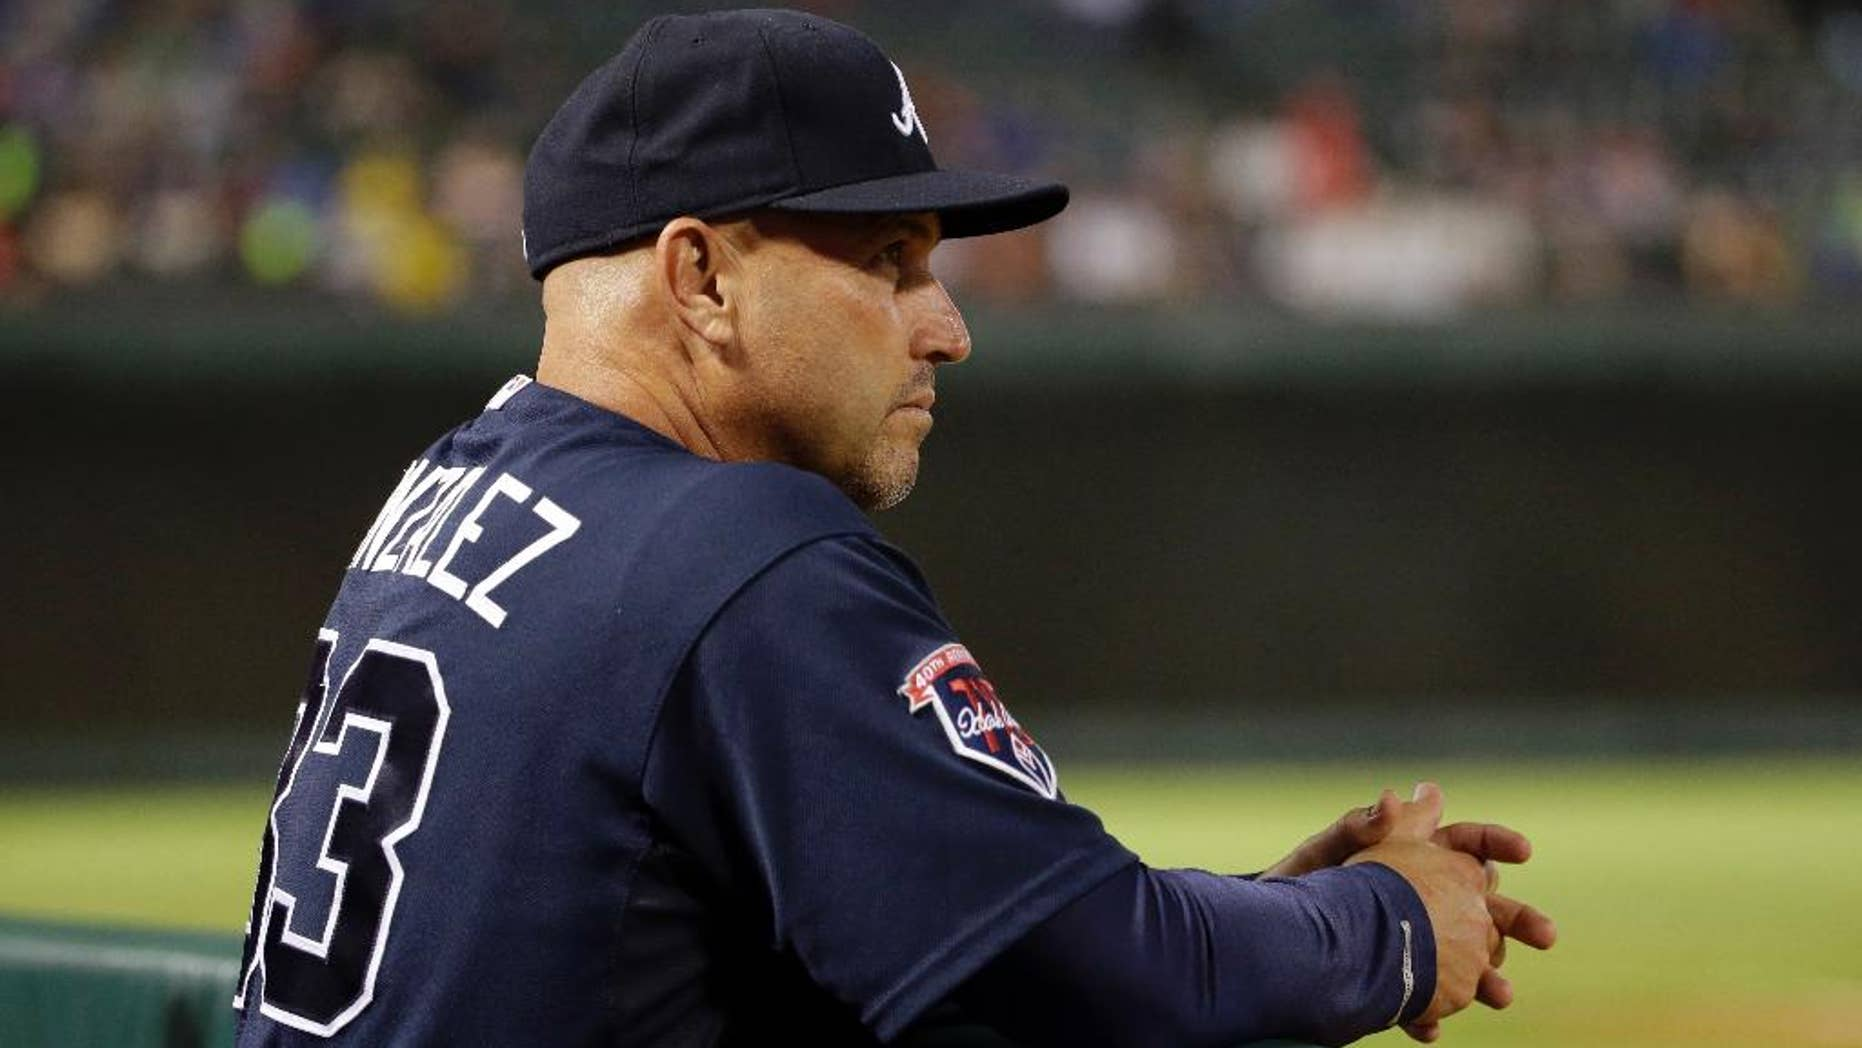 Atlanta Braves manager Fredi Gonzalez watches the Braves' baseball game against the Texas Rangers in the eighth inning Friday, Sept. 12, 2014, in Arlington, Texas. The Rangers won 2-1. (AP Photo/Tony Gutierrez)